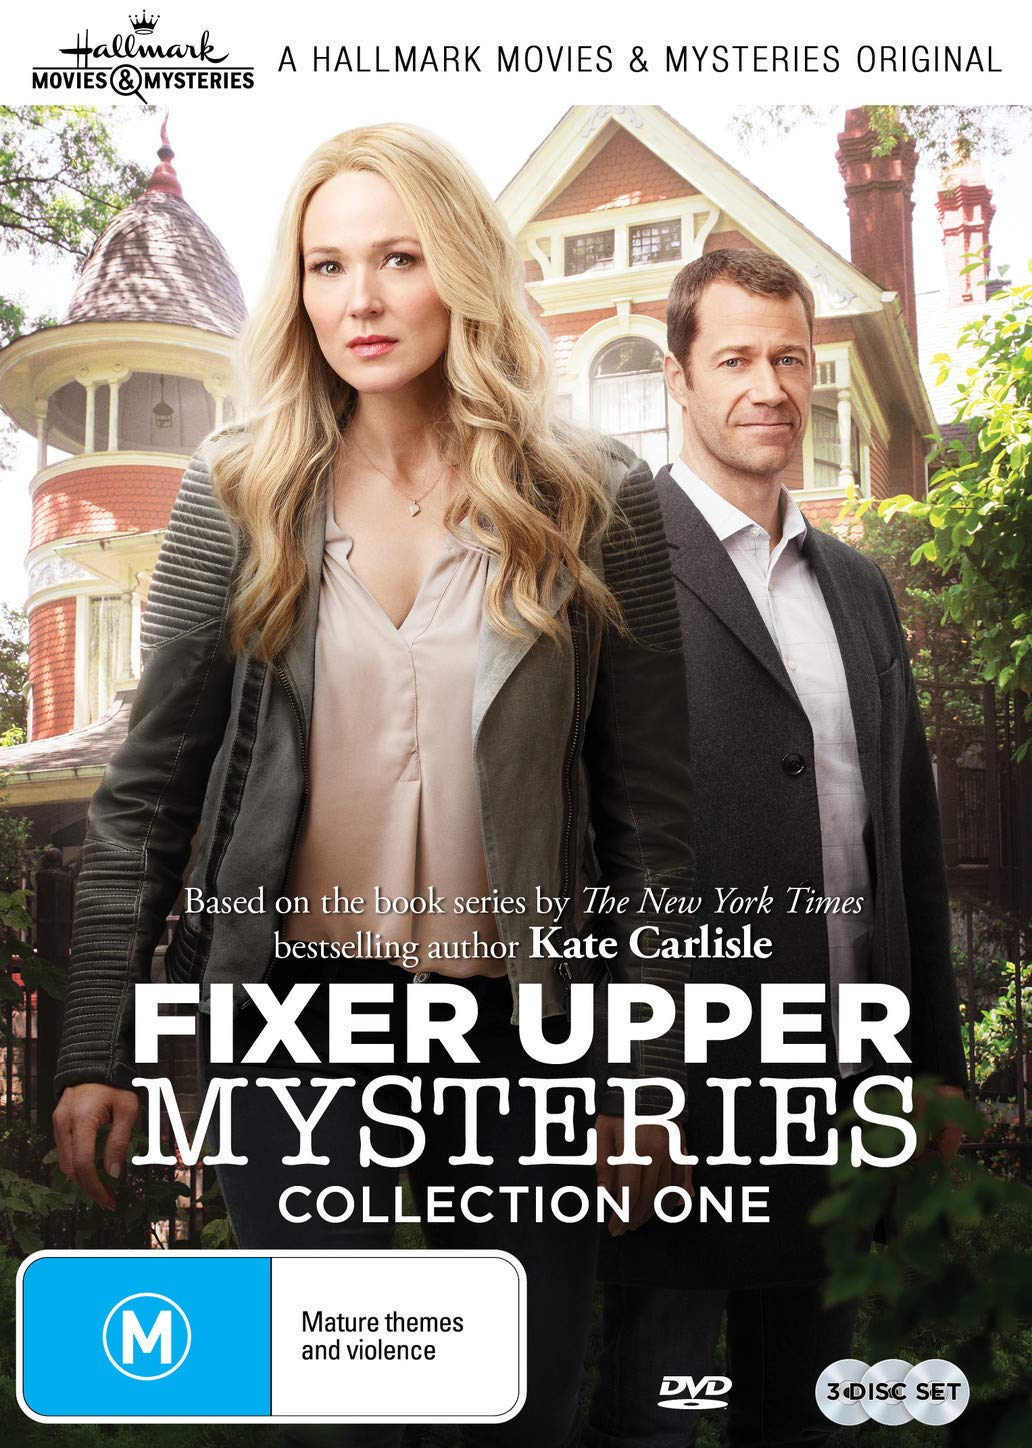 Fixer Upper Mysteries - 3 Film Collection One (Framed for Murder/Concrete Evidence/A Deadly Deed) Jewel Colin Ferguson VVE1471